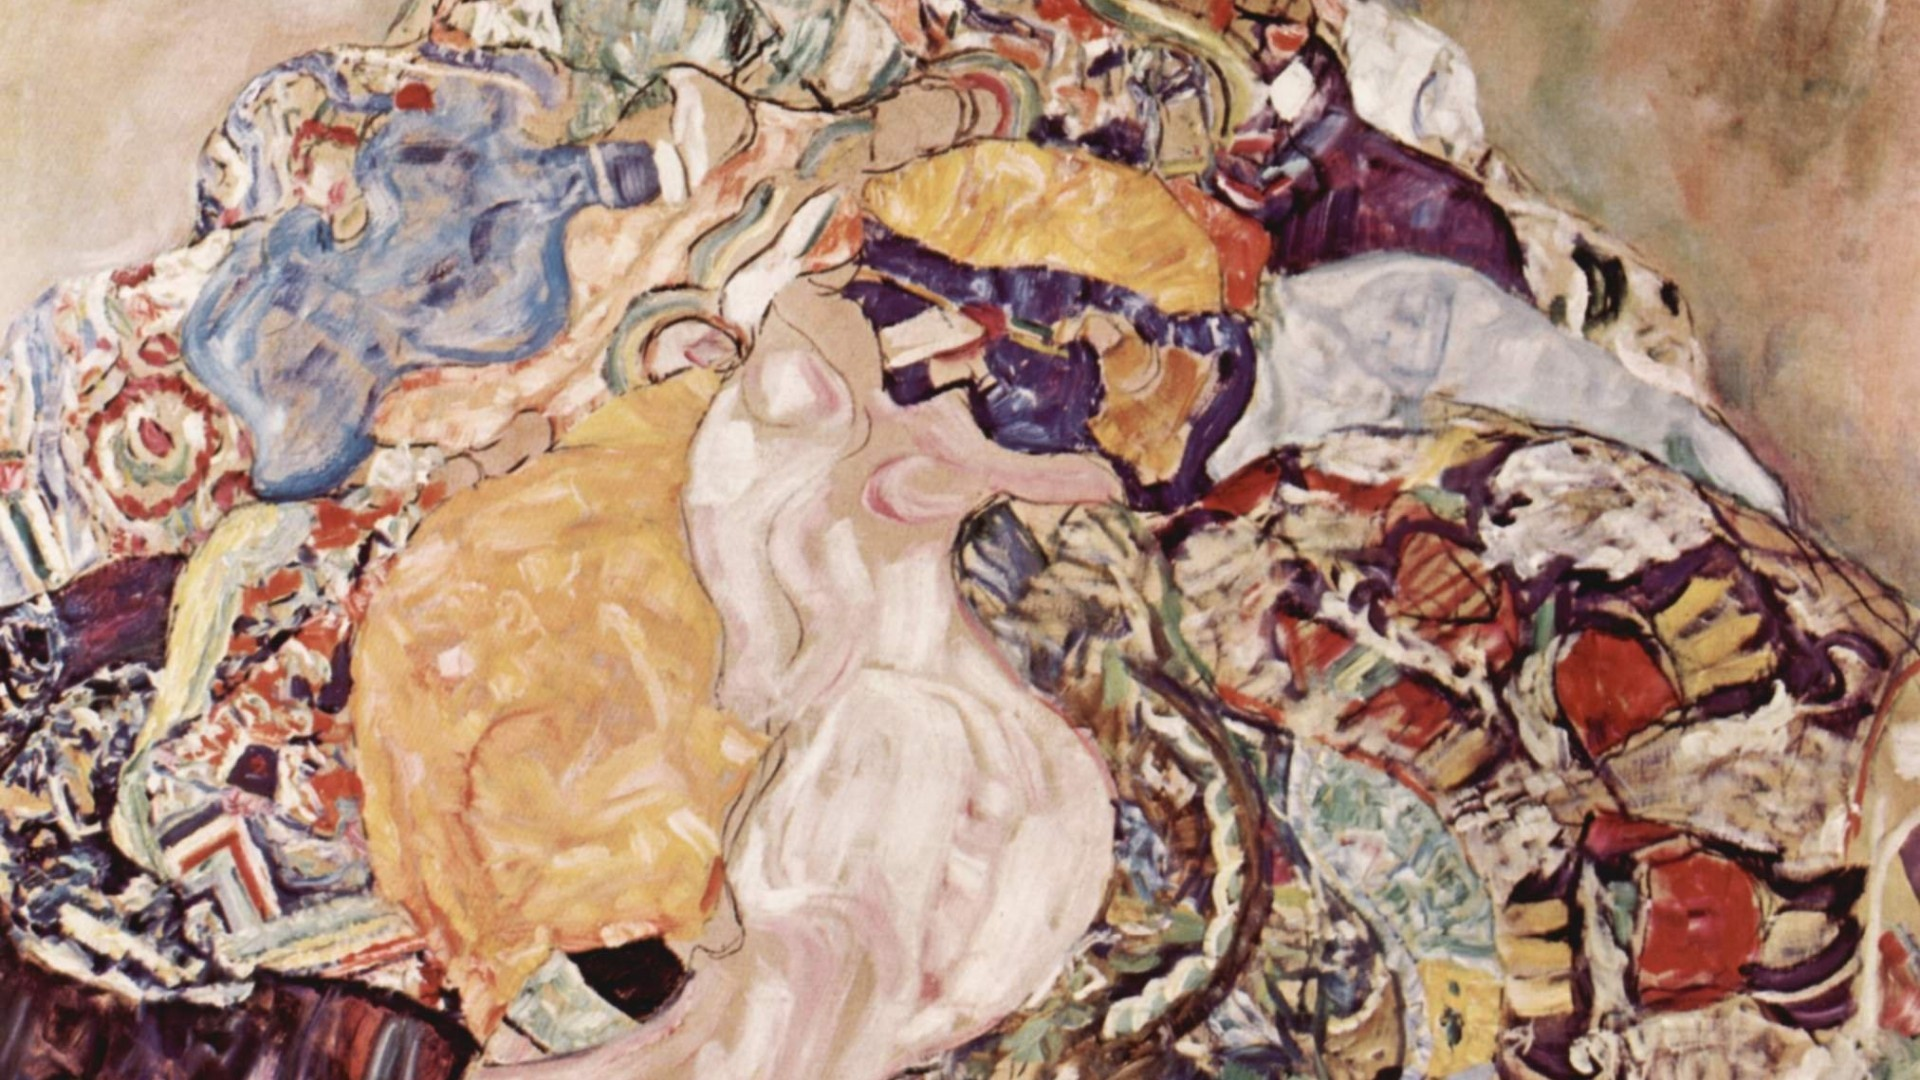 1920x1080 Painting of Gustav Klimt - Mess